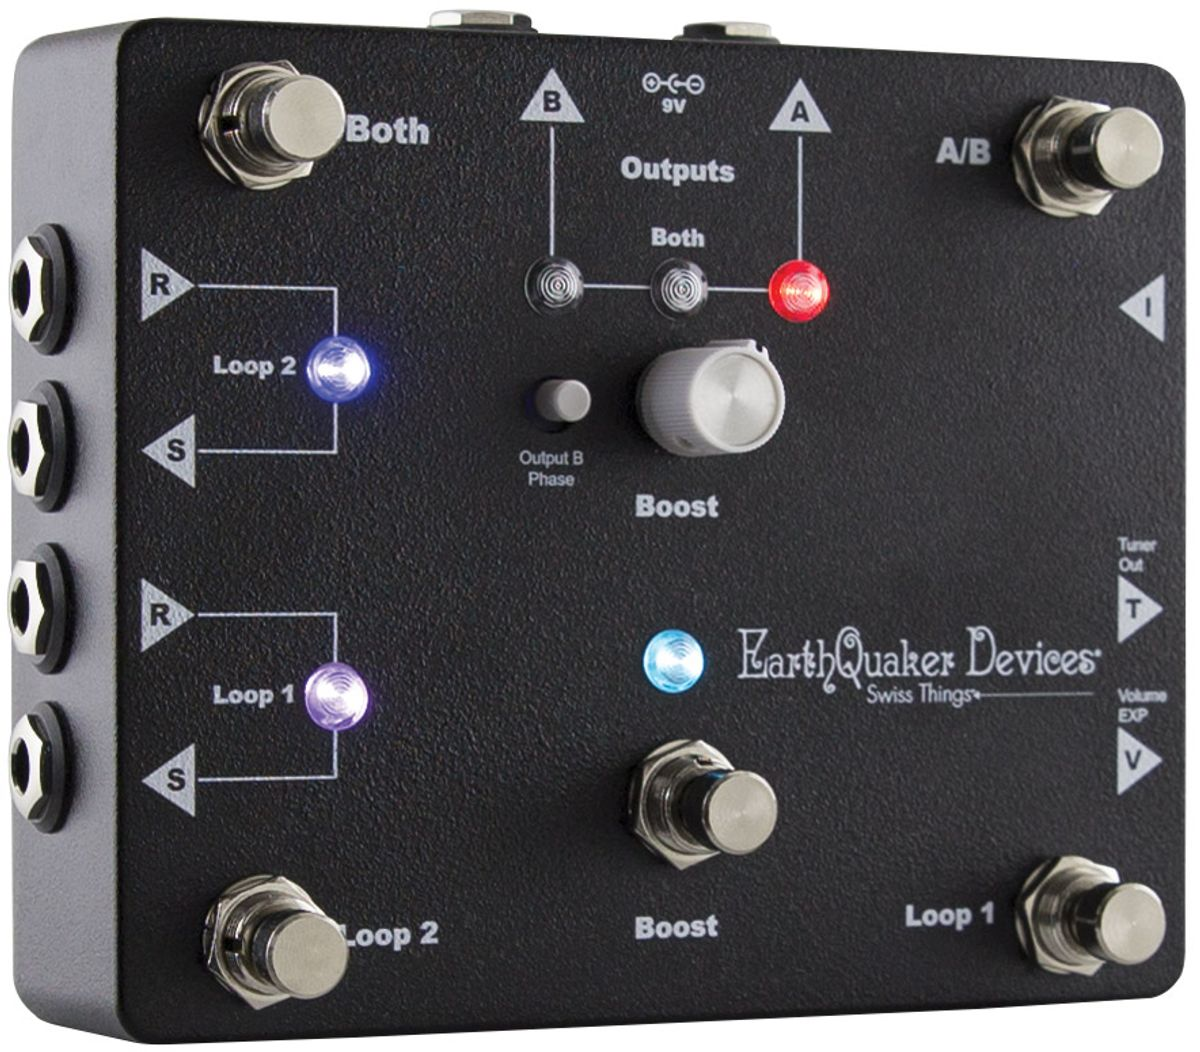 Quick Hit: EarthQuaker Devices Swiss Things Review